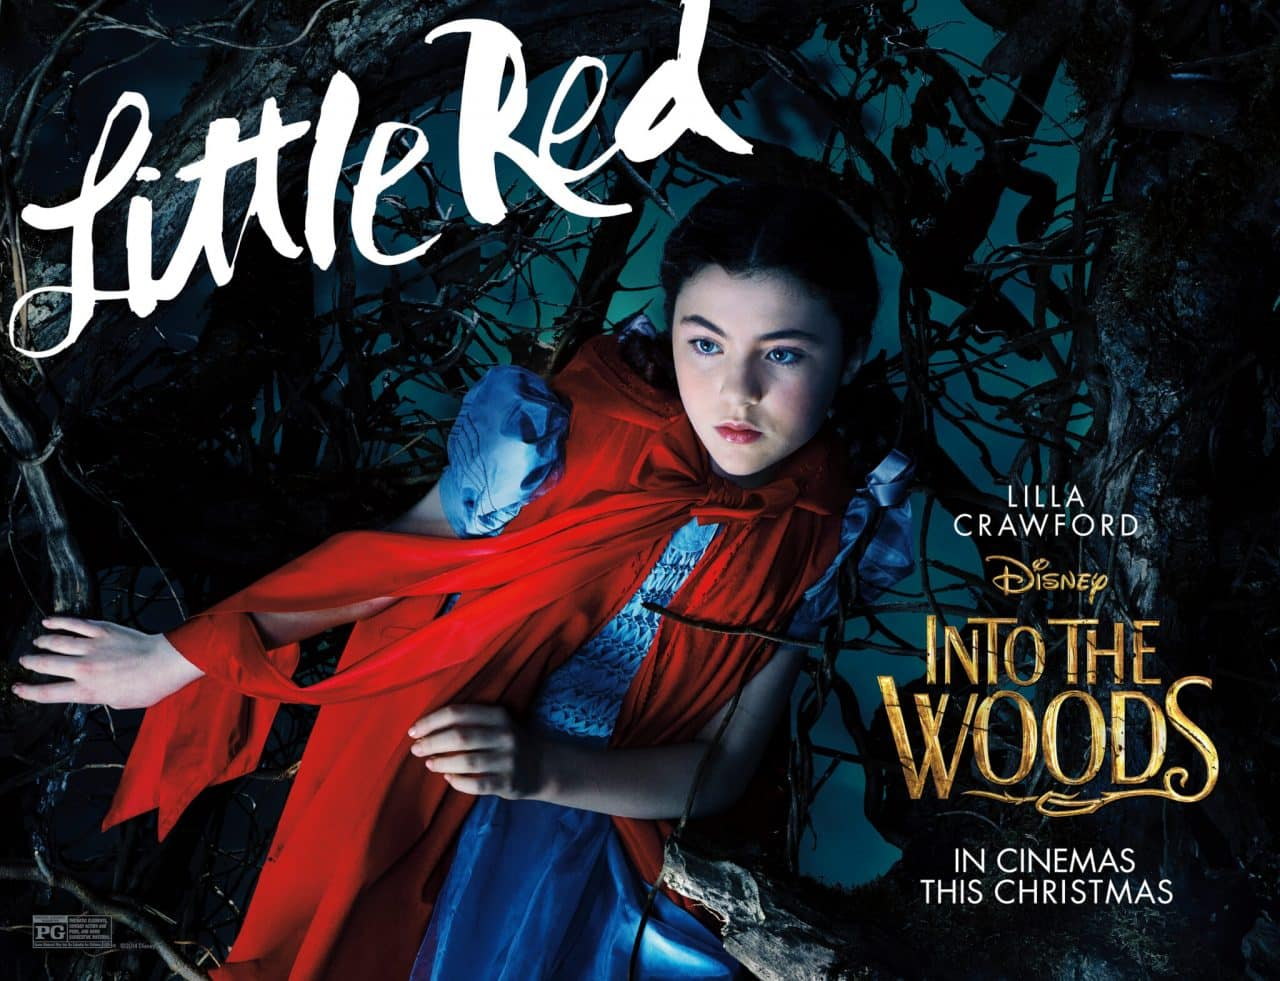 INTO THE WOODS - LITTLE RED RIDING HOOD